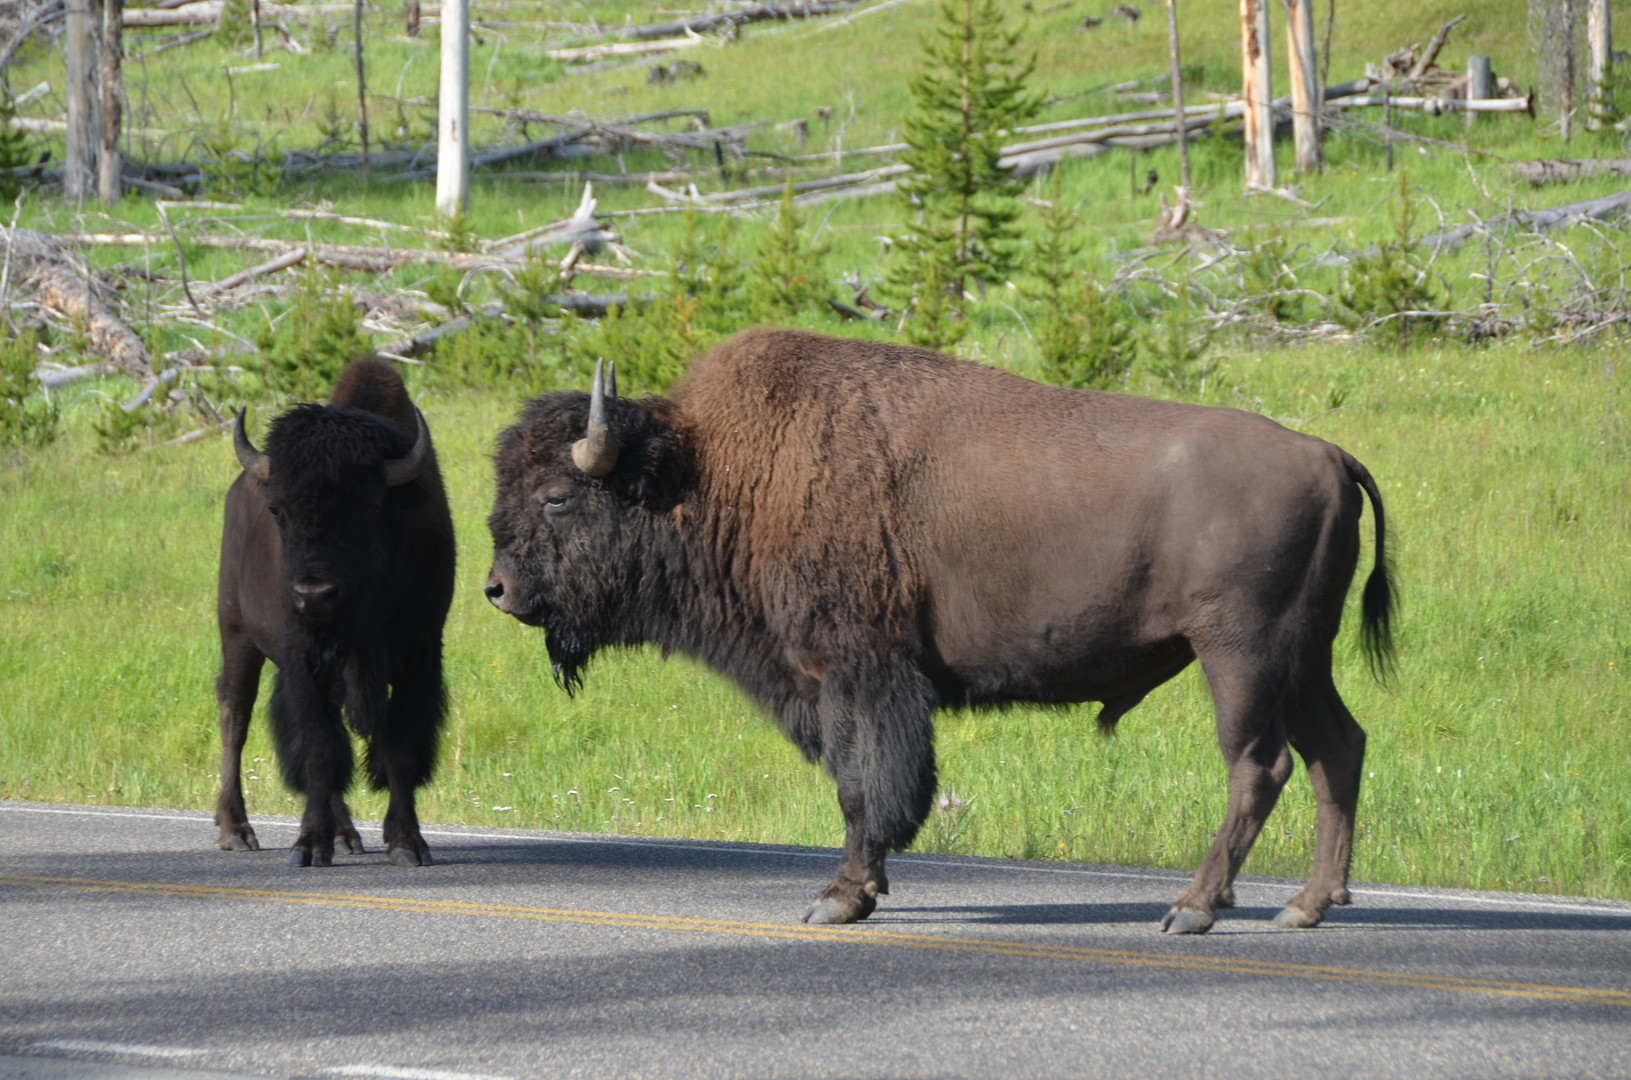 Bison in the Road.jpg